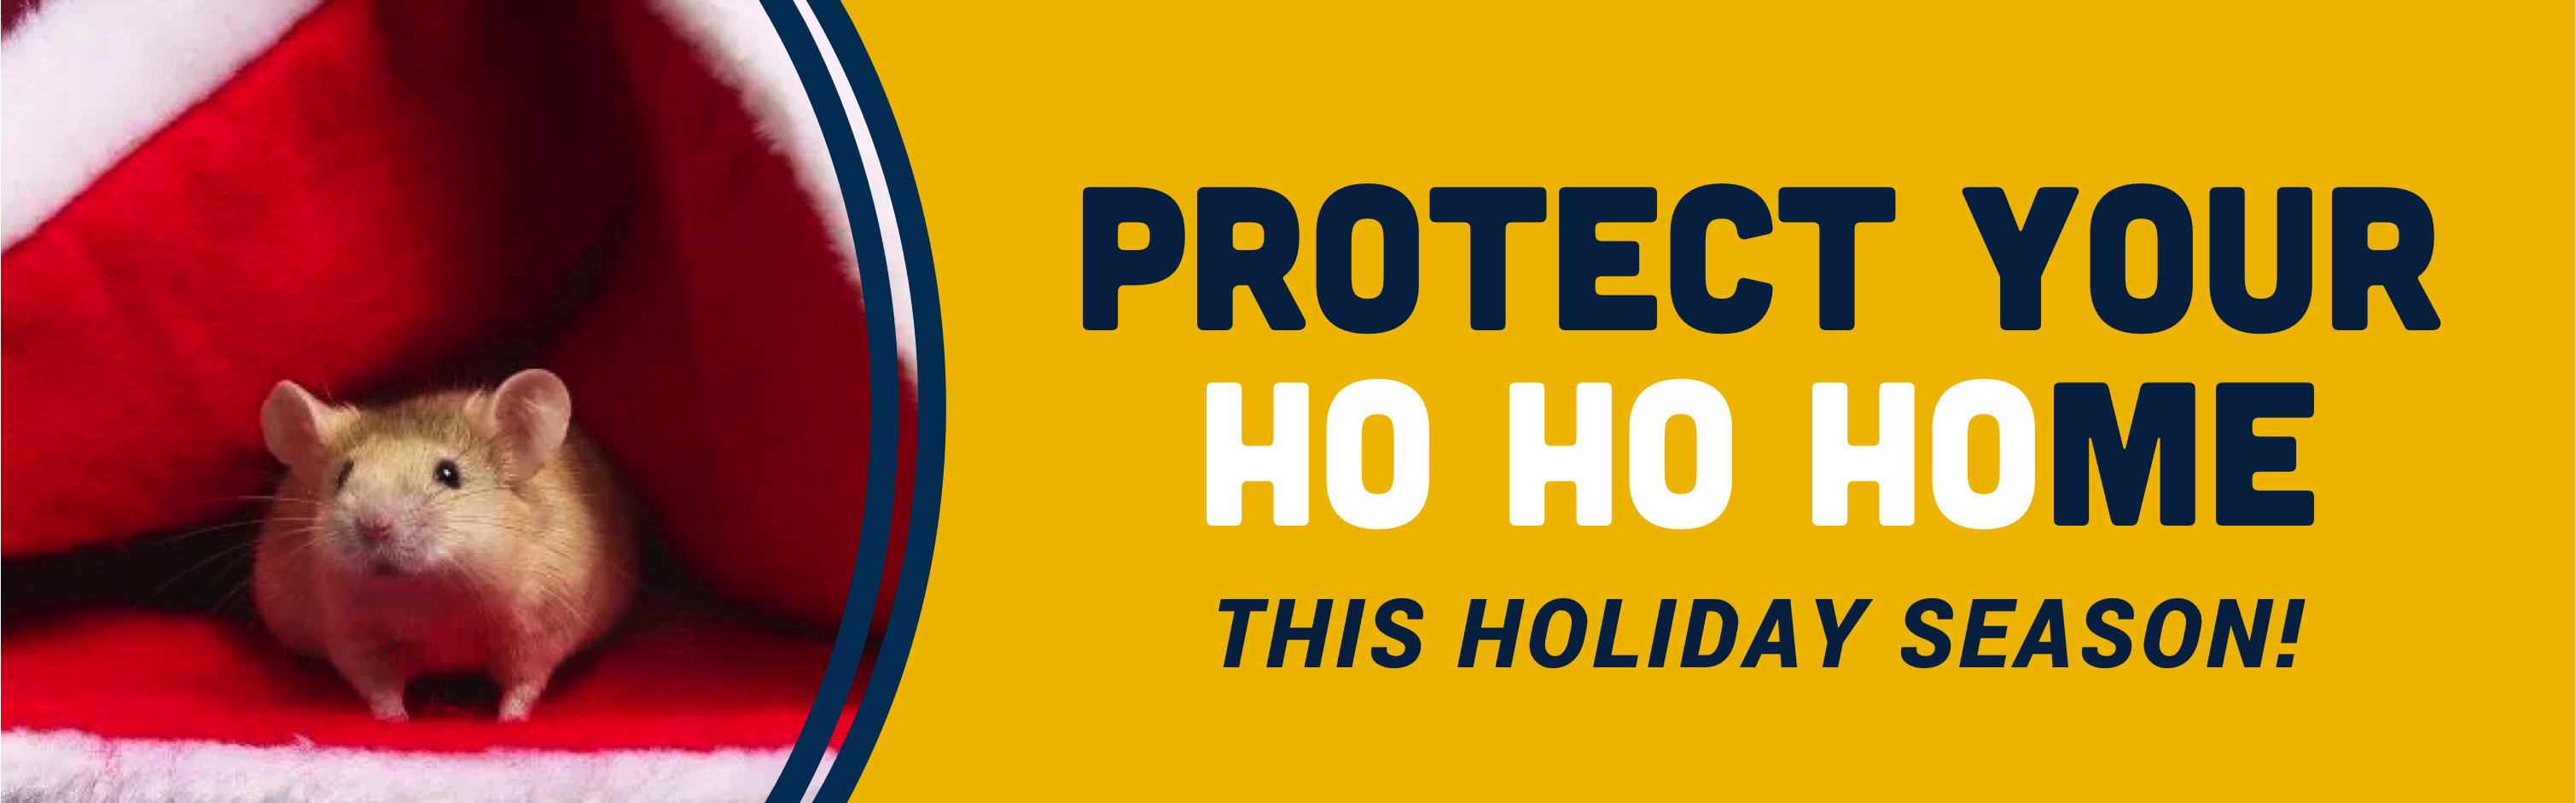 Protect Your Home with Guardian Pest Control Services this Season